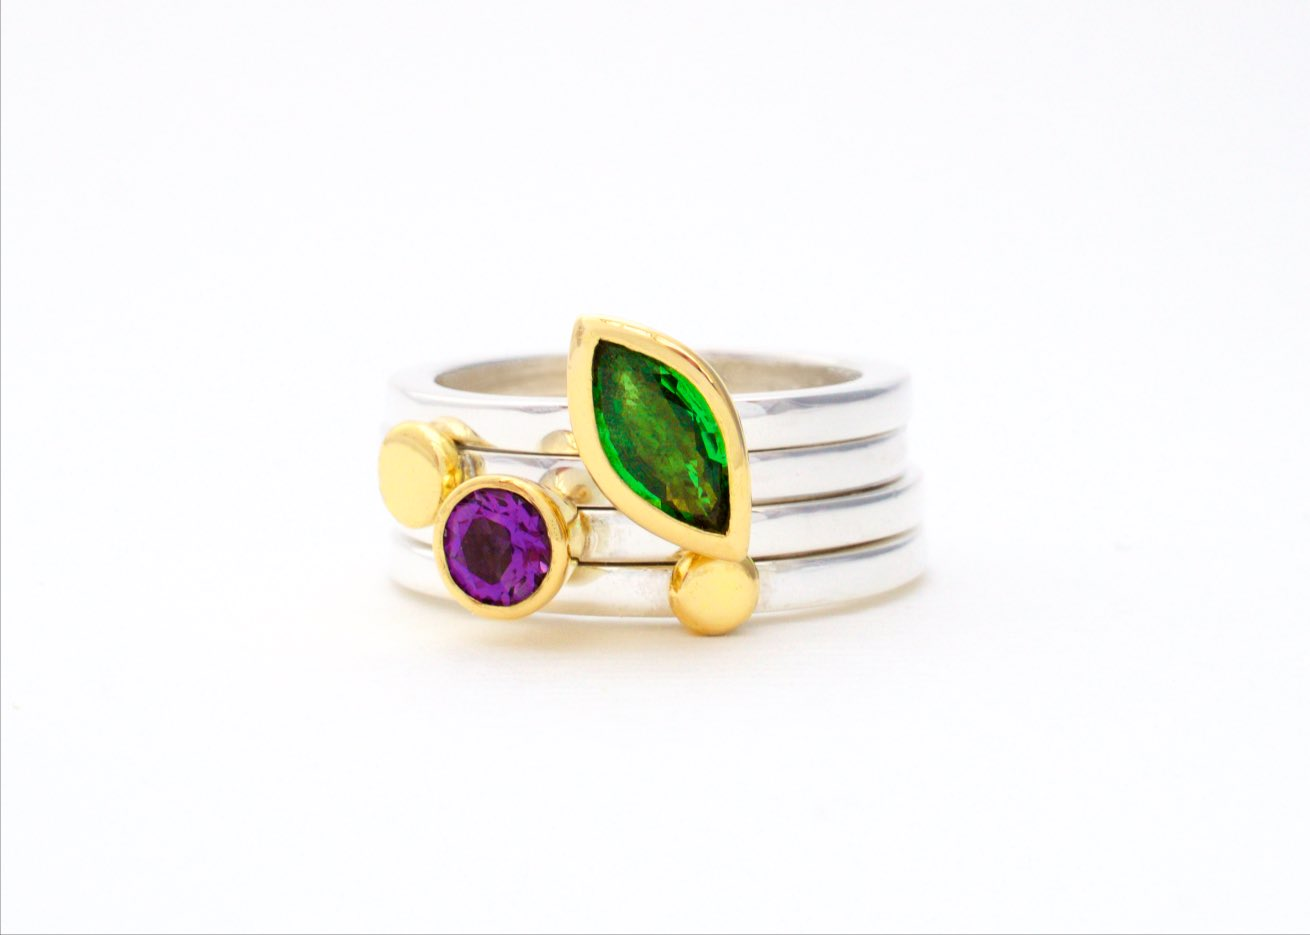 Silver, 18 carat gold, amethyst and tsavorite garnet rings